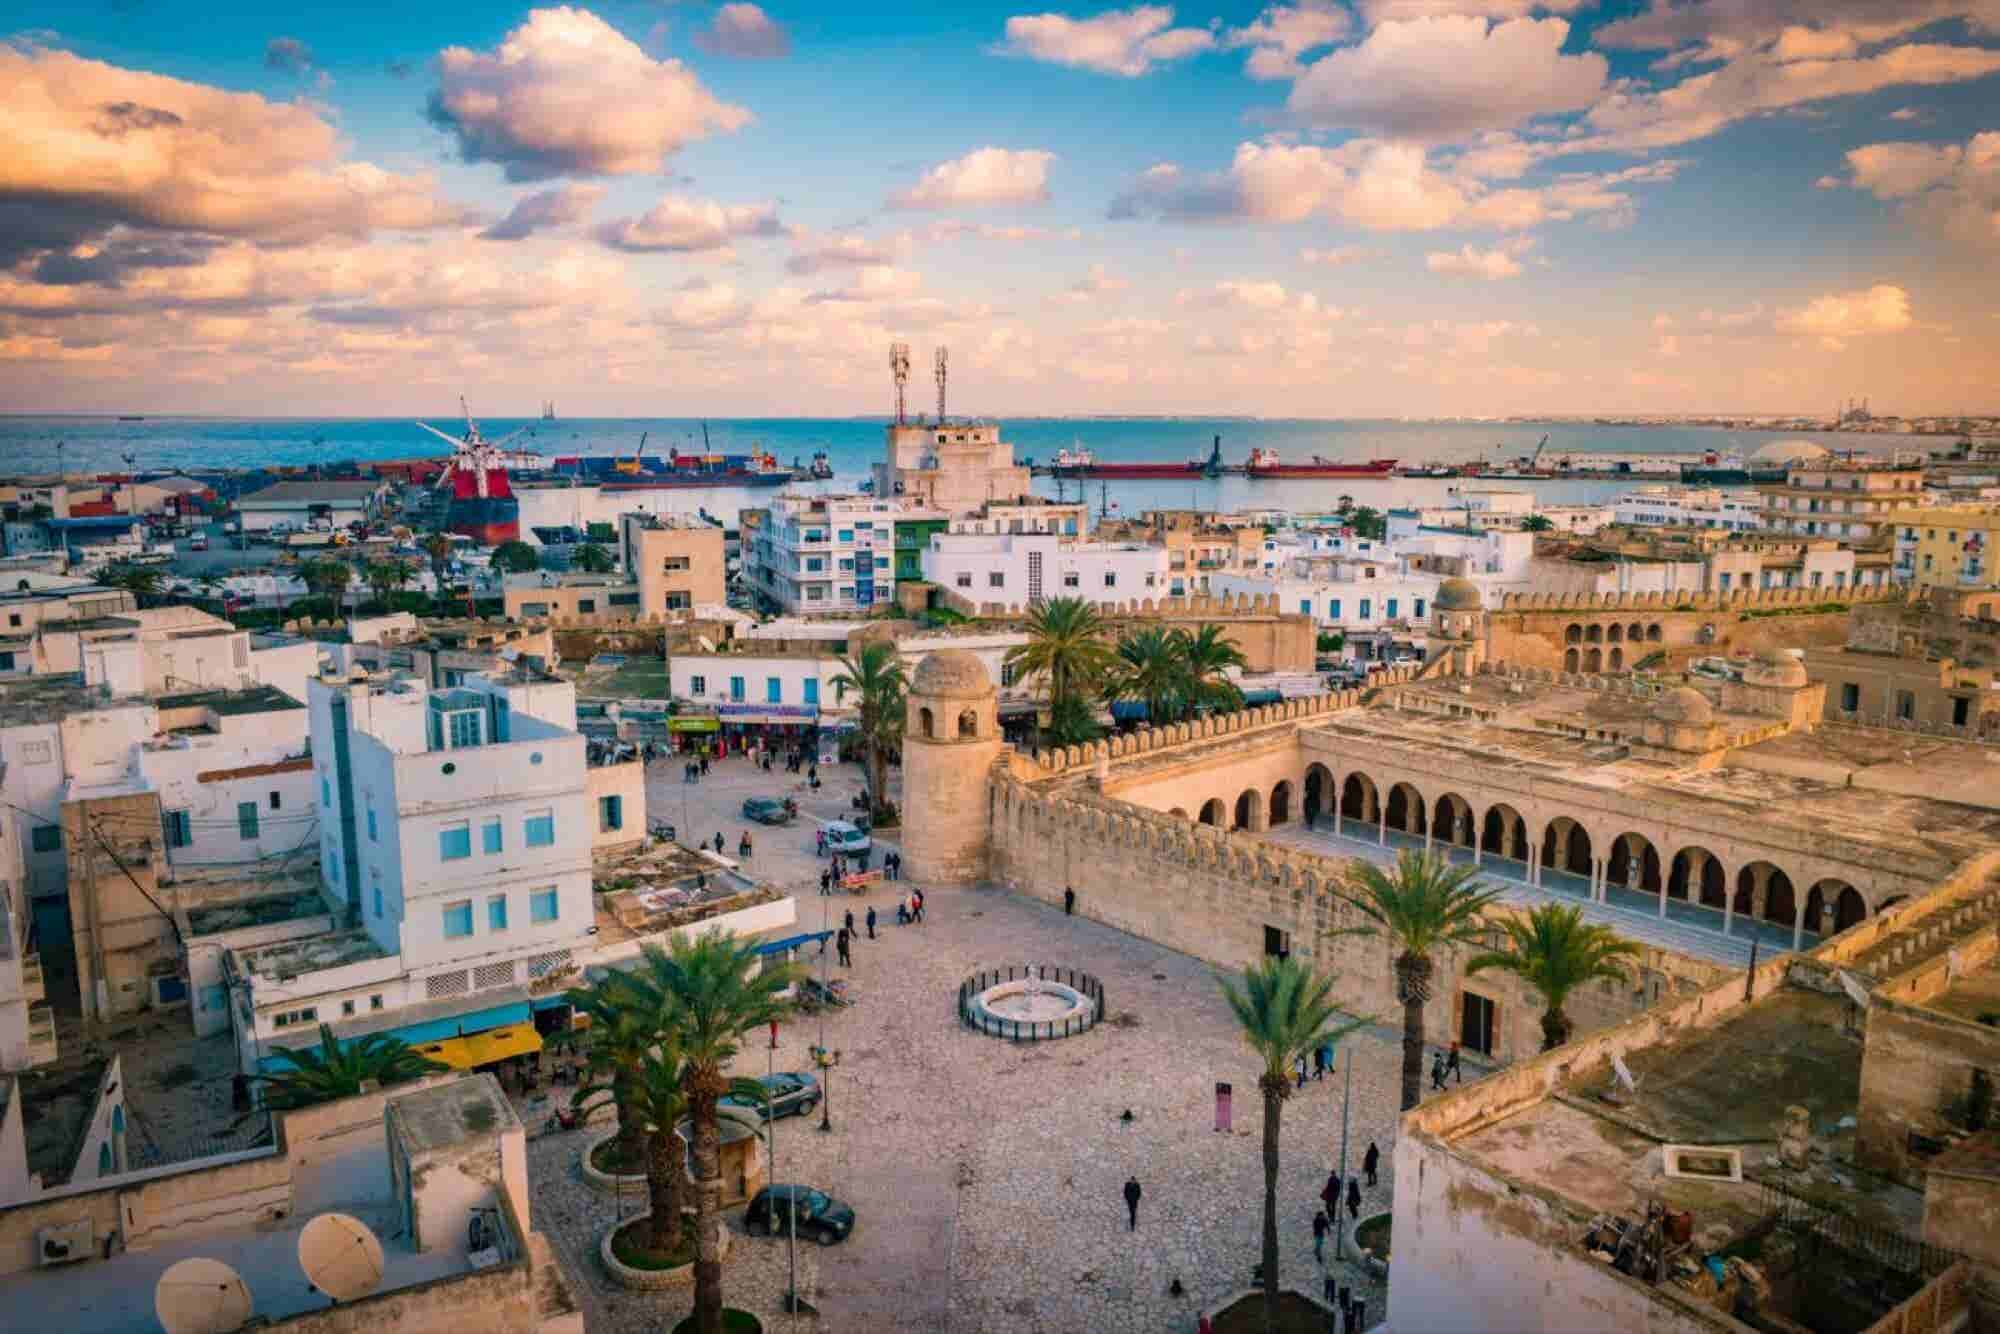 Bottom-Up Policymaking: A Look At The Origins Of The Landmark Tunisian Startup Act